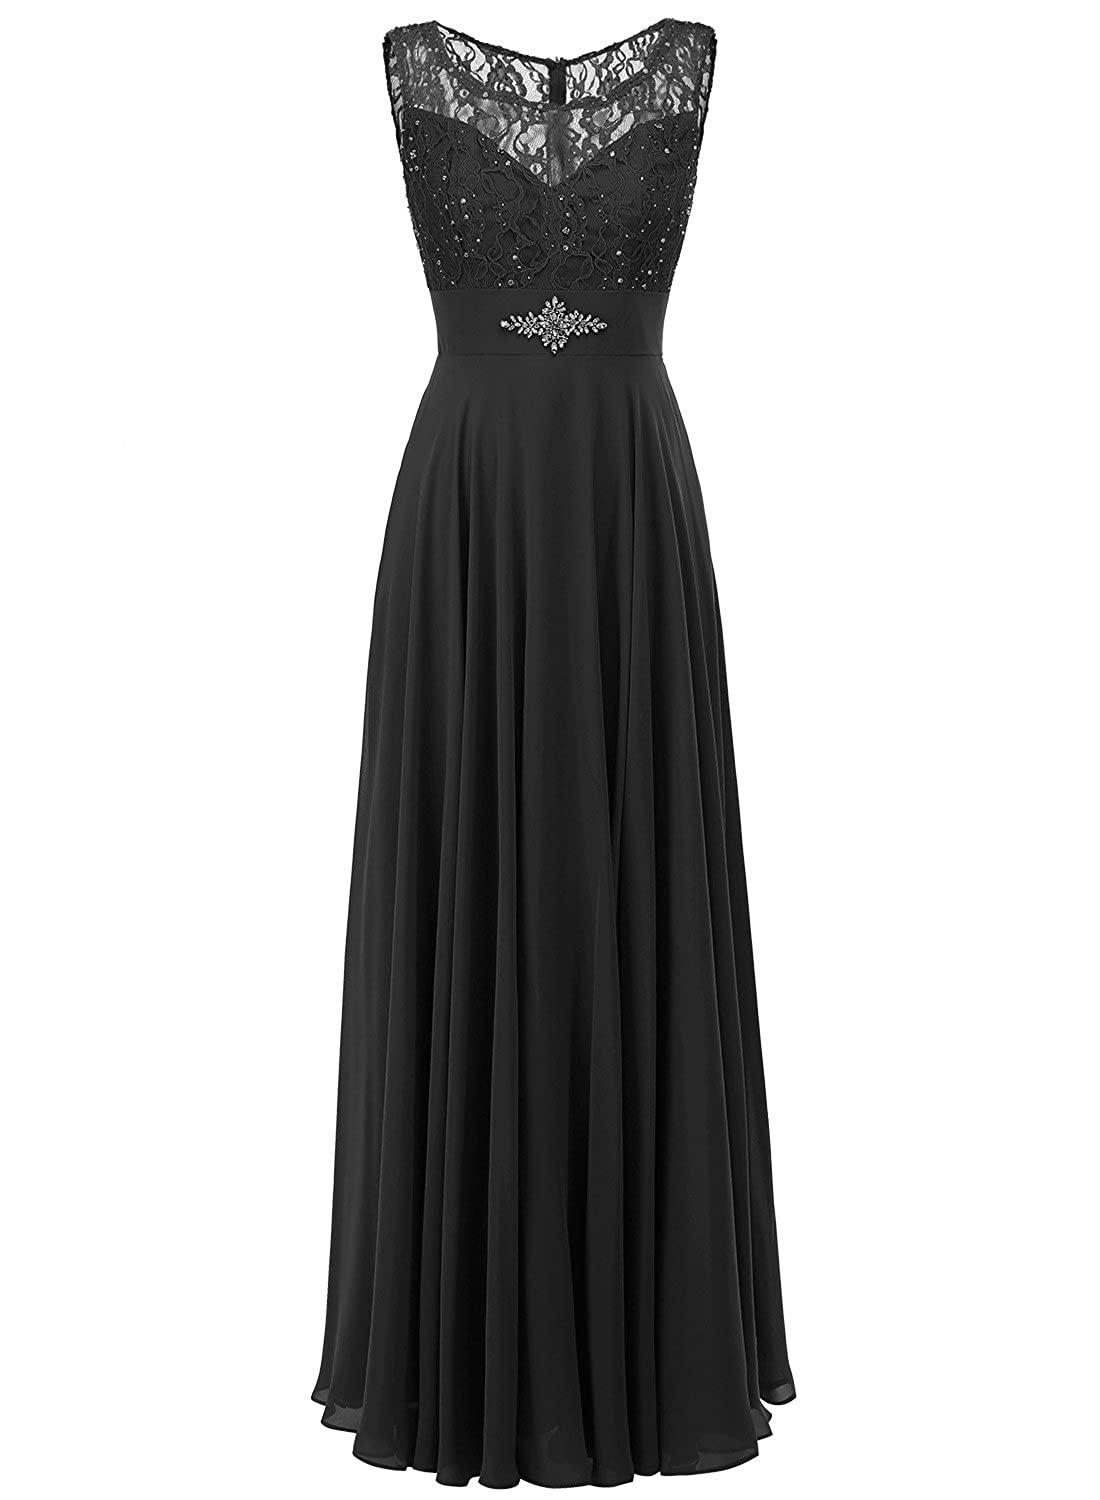 ALAGIRLS Women Round Neck Lace Beaded Long Prom Dresses Chiffon Eevning Party Gowns: Amazon.co.uk: Clothing